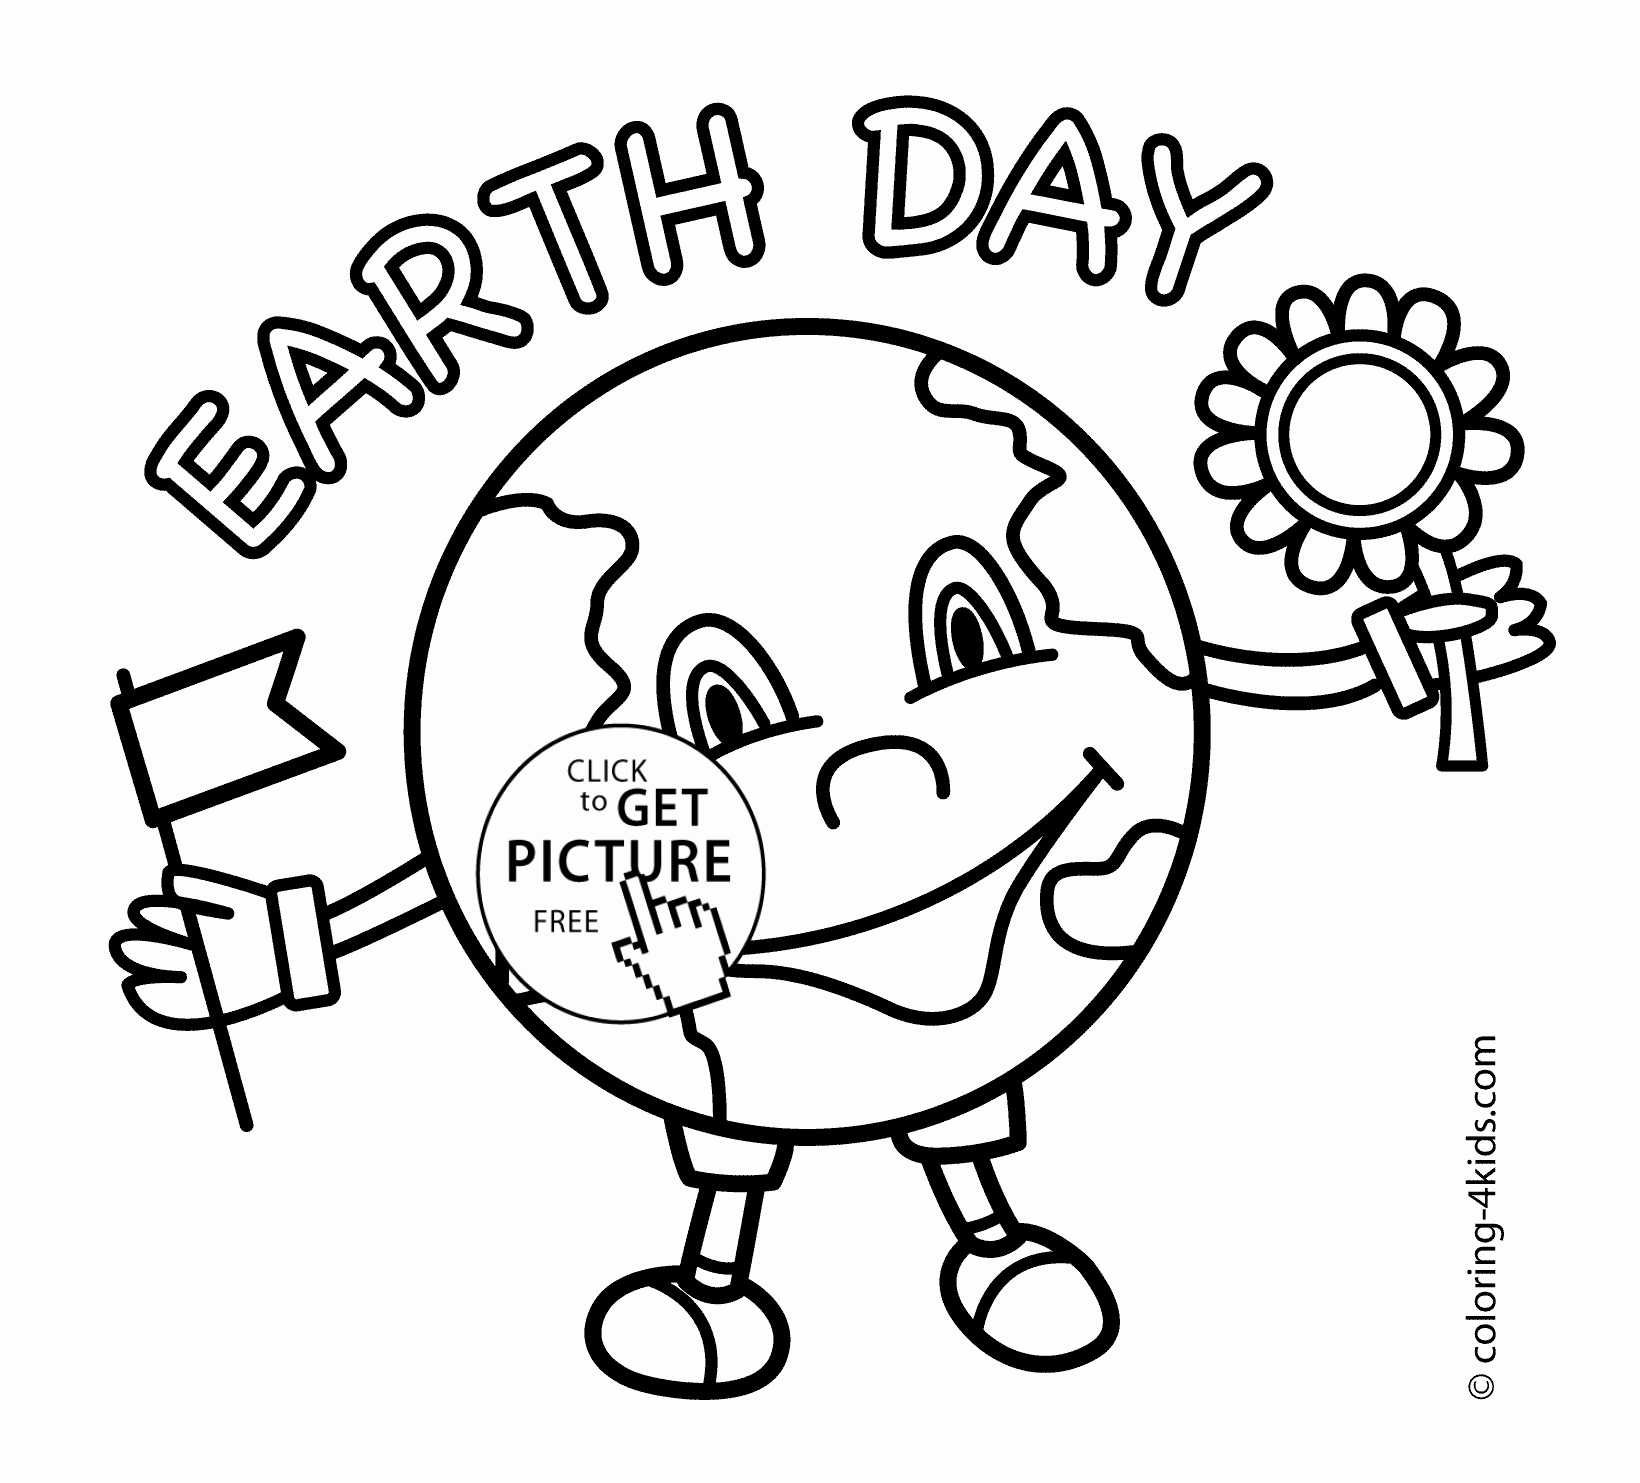 earth day coloring pictures earth day printable coloring pages at getdrawings free earth day pictures coloring